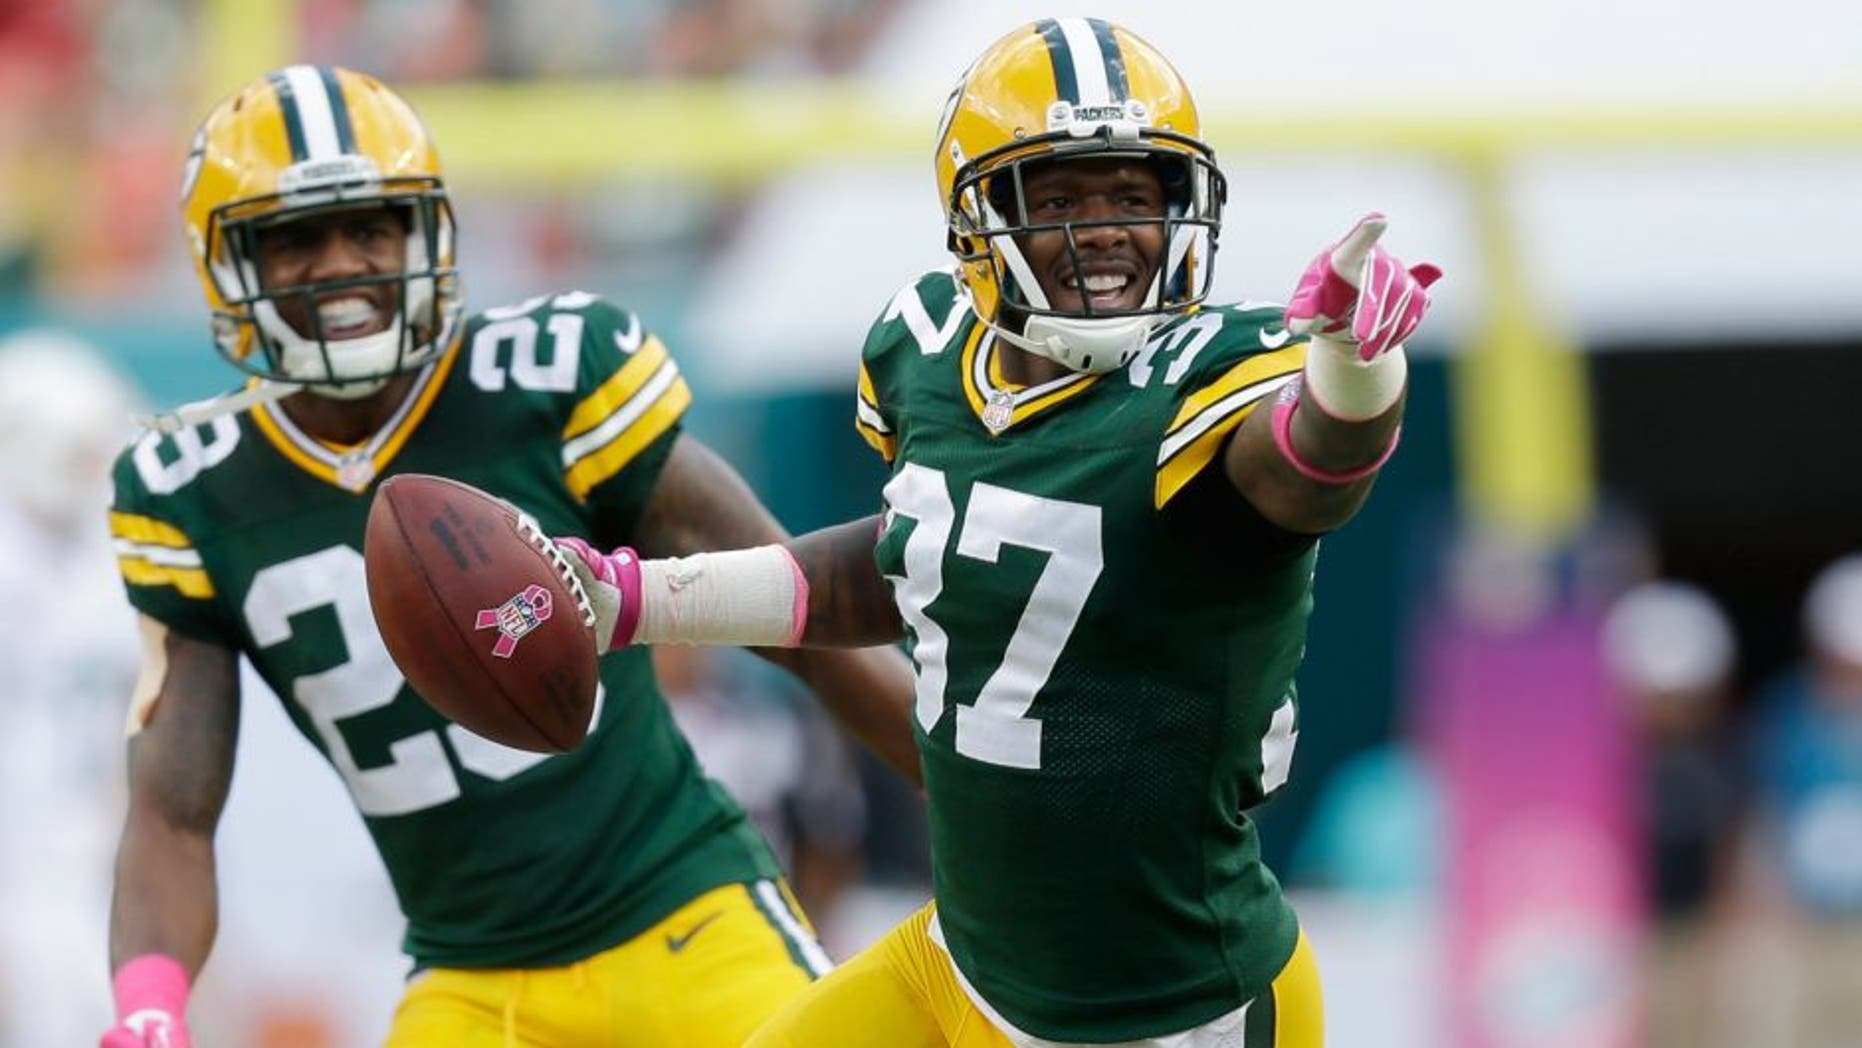 Green Bay Packers cornerback Sam Shields (37) points to the sidelines after intercepting a ball intended for Miami Dolphins wide receiver Brian Hartline (82) during the first half of an NFL football game, Sunday, Oct. 12, 2014, in Miami Gardens, Fla. In the background is Green Bay Packers cornerback Casey Hayward (29). (AP Photo/Wilfredo Lee)